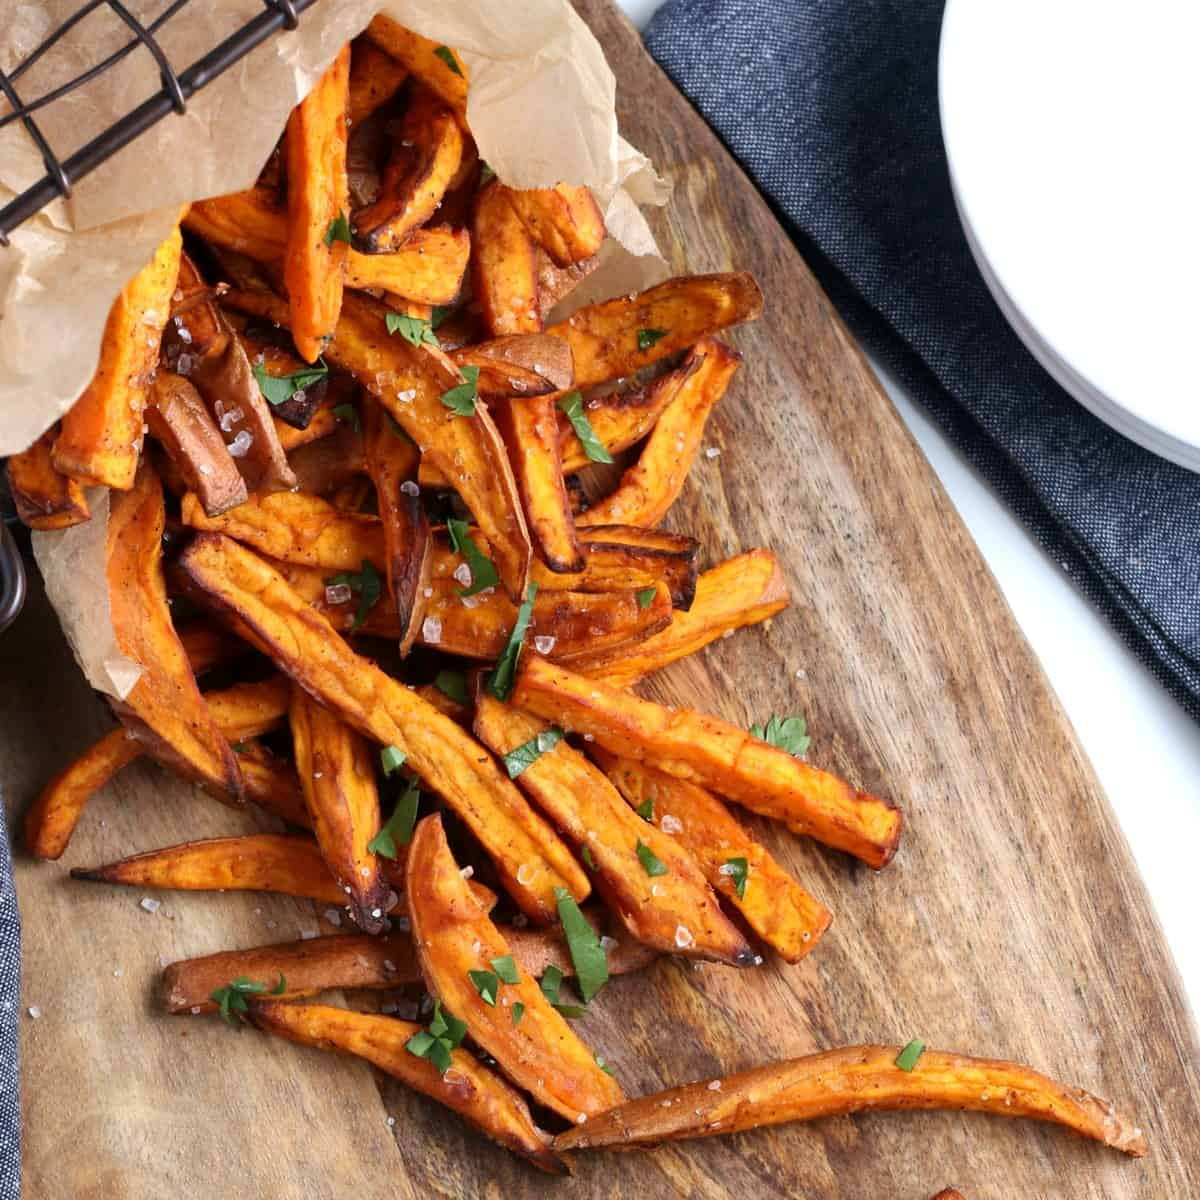 Overhead view of sprawled sweet potato fries on a wooden board.